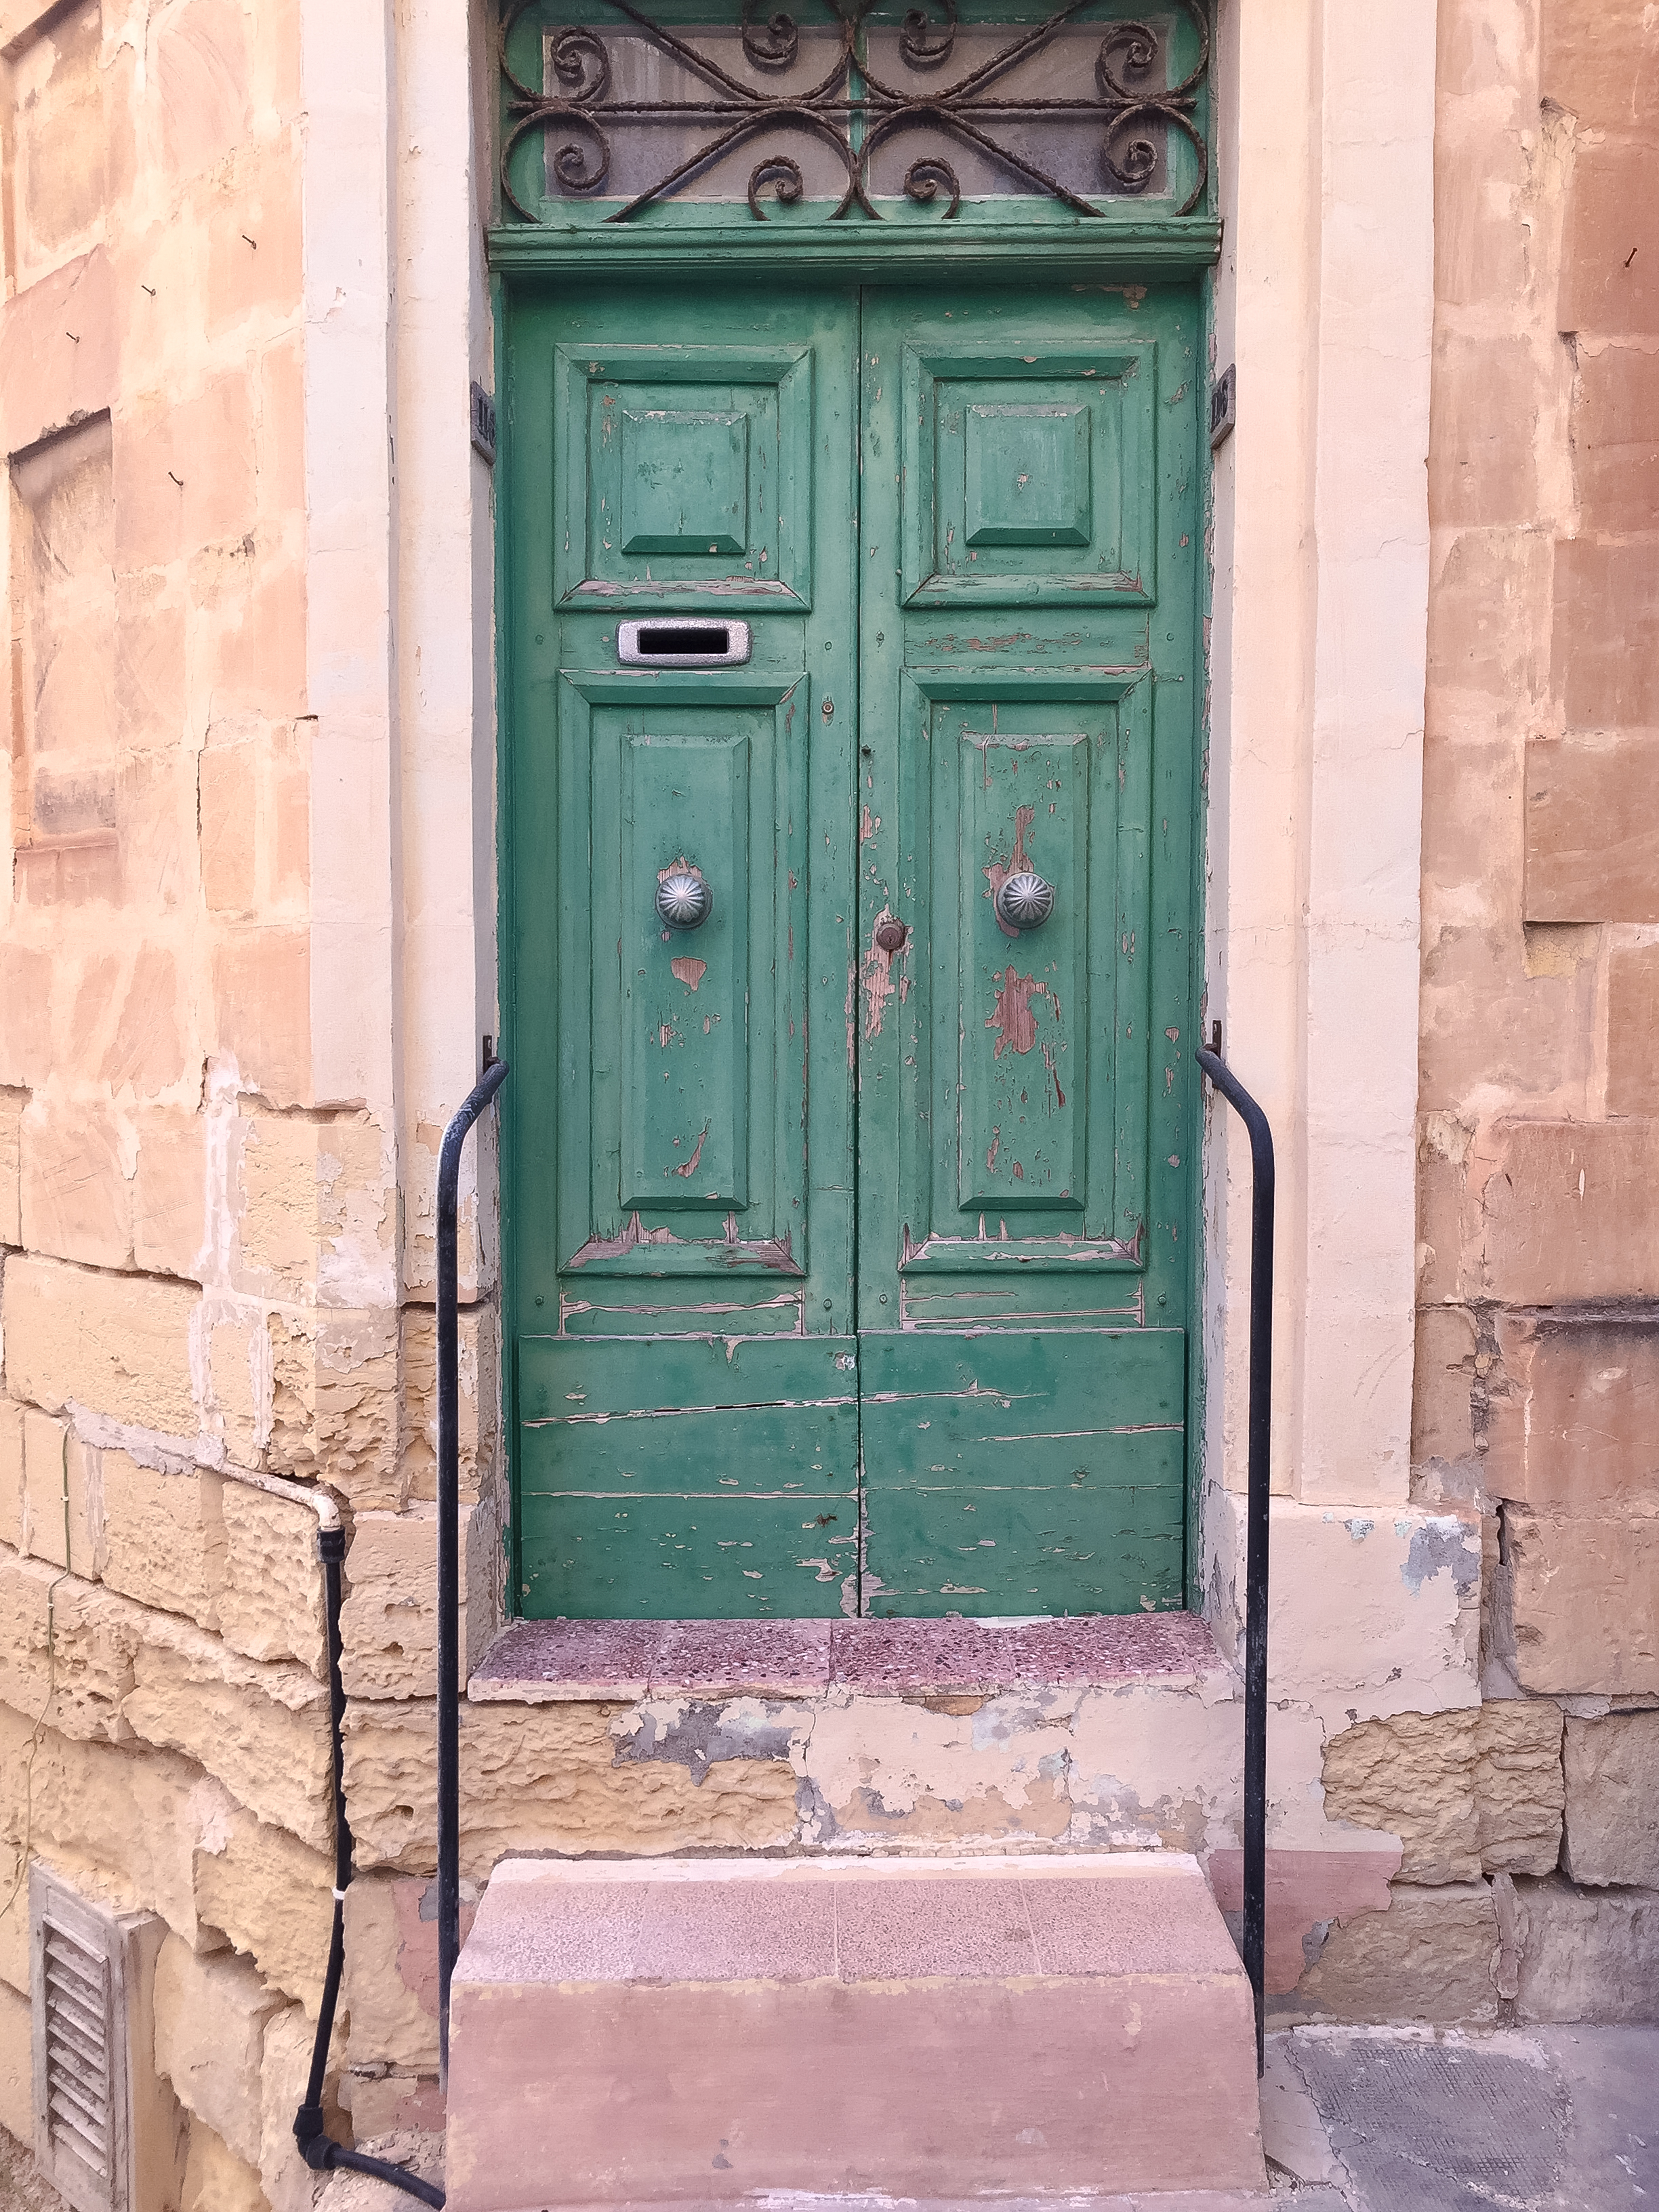 Door | Streets of Malta | Birgu | - Thinking About Appreciation For Quality In Malta | Malta, Europe | DoLessGetMoreDone.com | - Minimal Travel Documentary Photography - search for Liveability | Sustainability